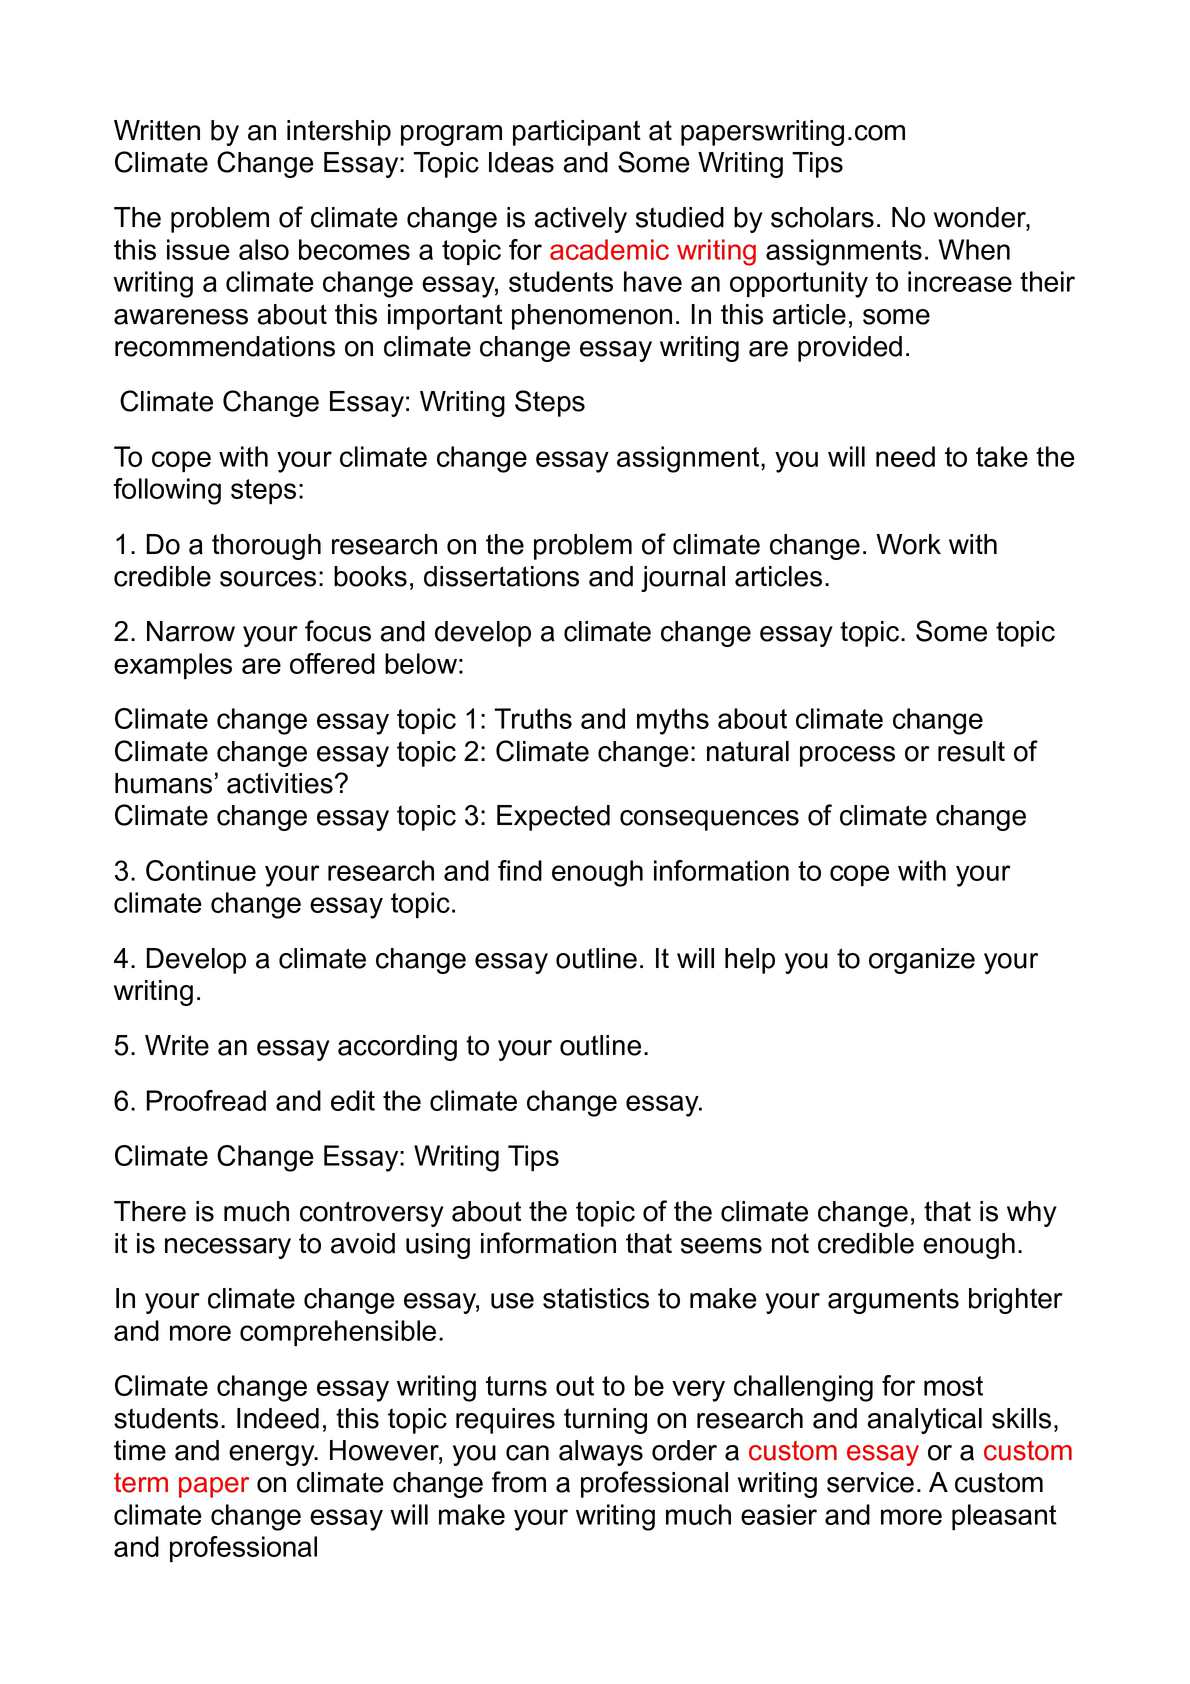 Global Warming Essay In English Need Help Essay Need Help To Write  Essay For Climate Change Calamatildecopyo Climate Change Essay Topic Ideas  And Some Writing Tips